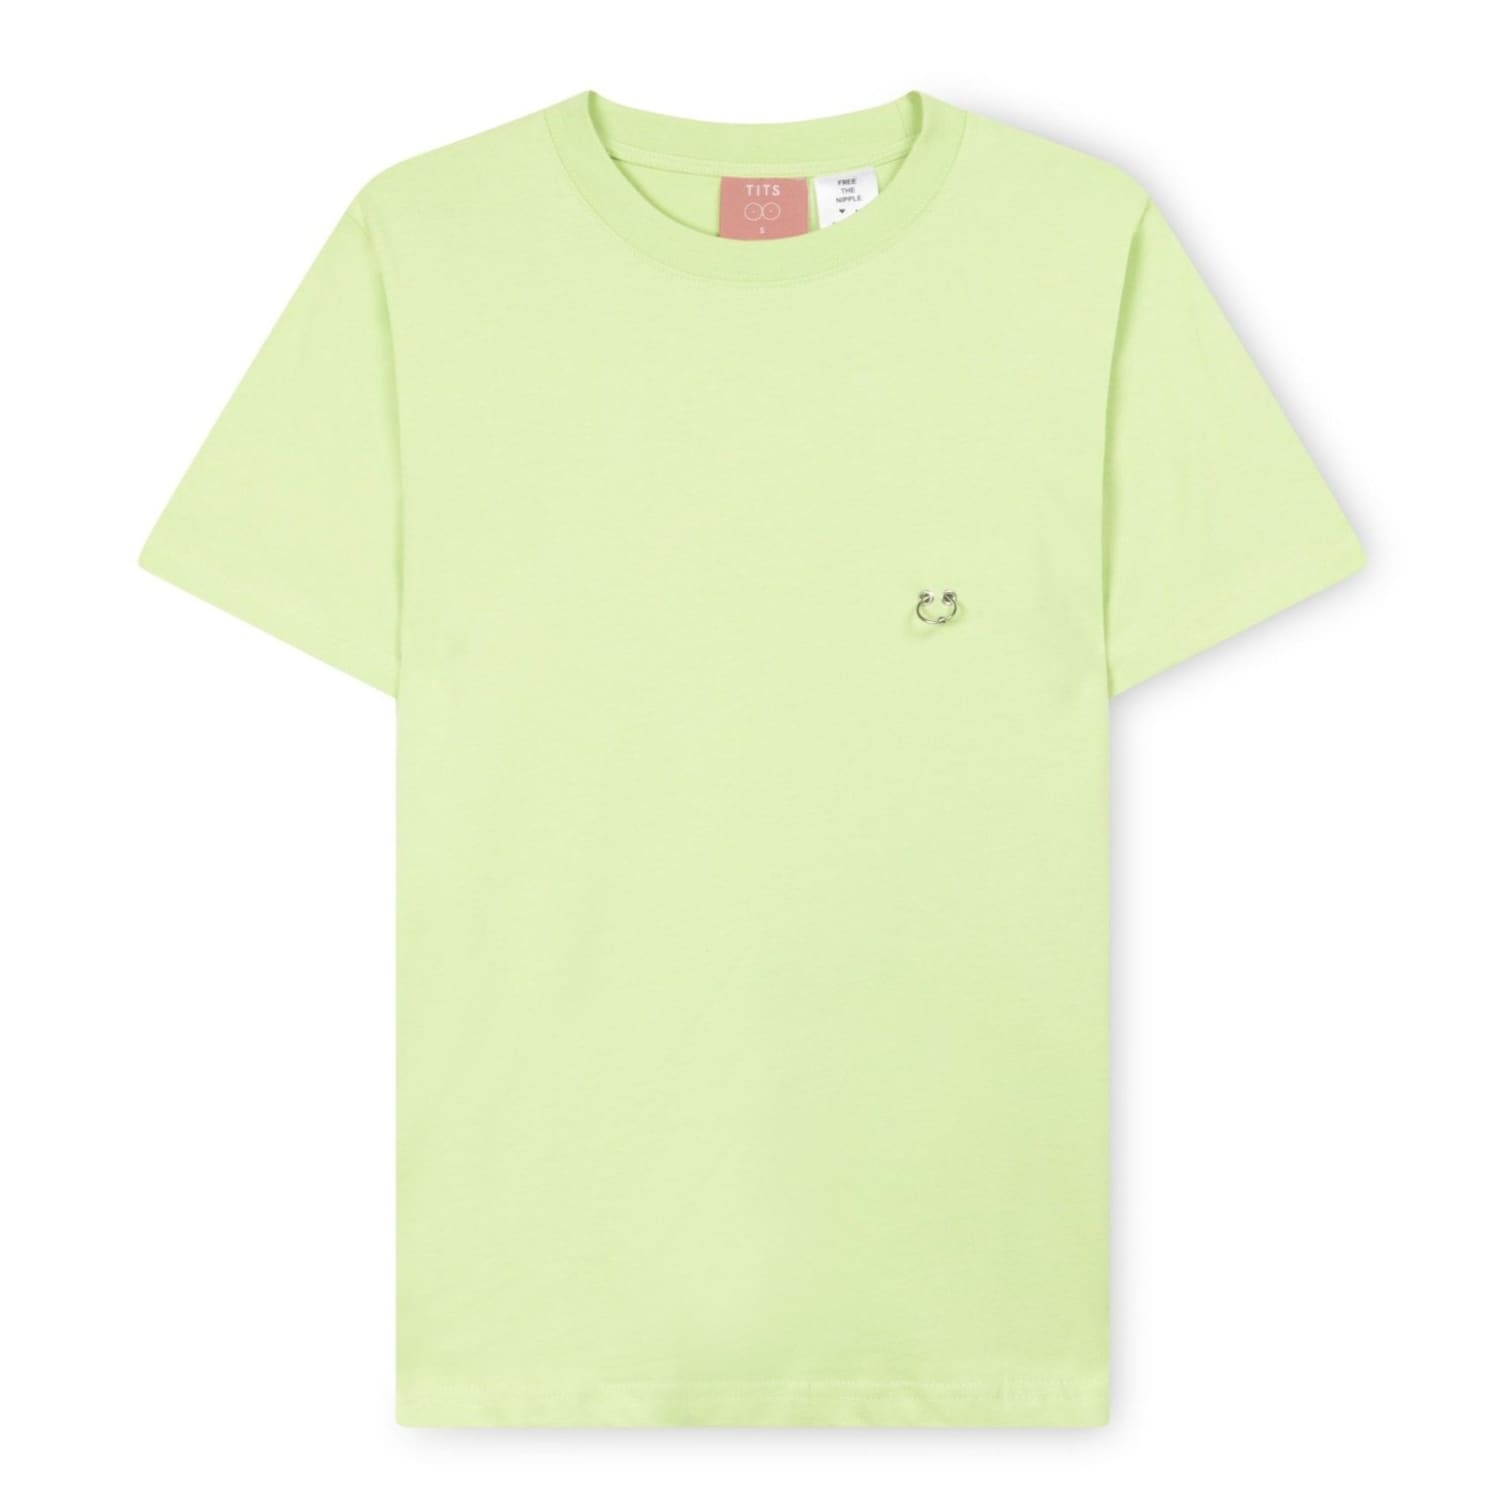 Pierced Tee - Lime Green Amsterdam - Boobs - Breasts -